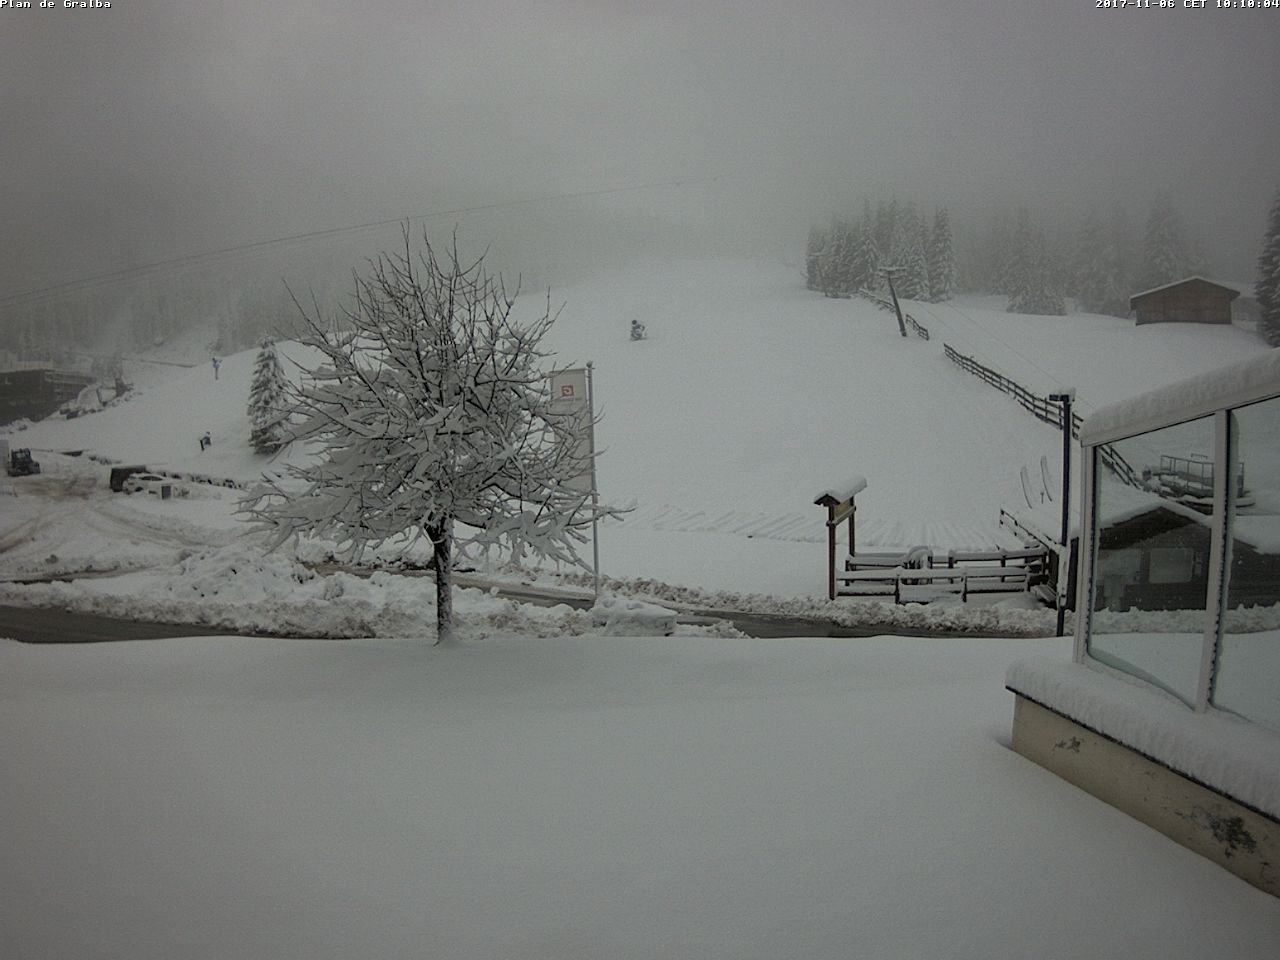 Webcam Plan de Gralba Val Gardena